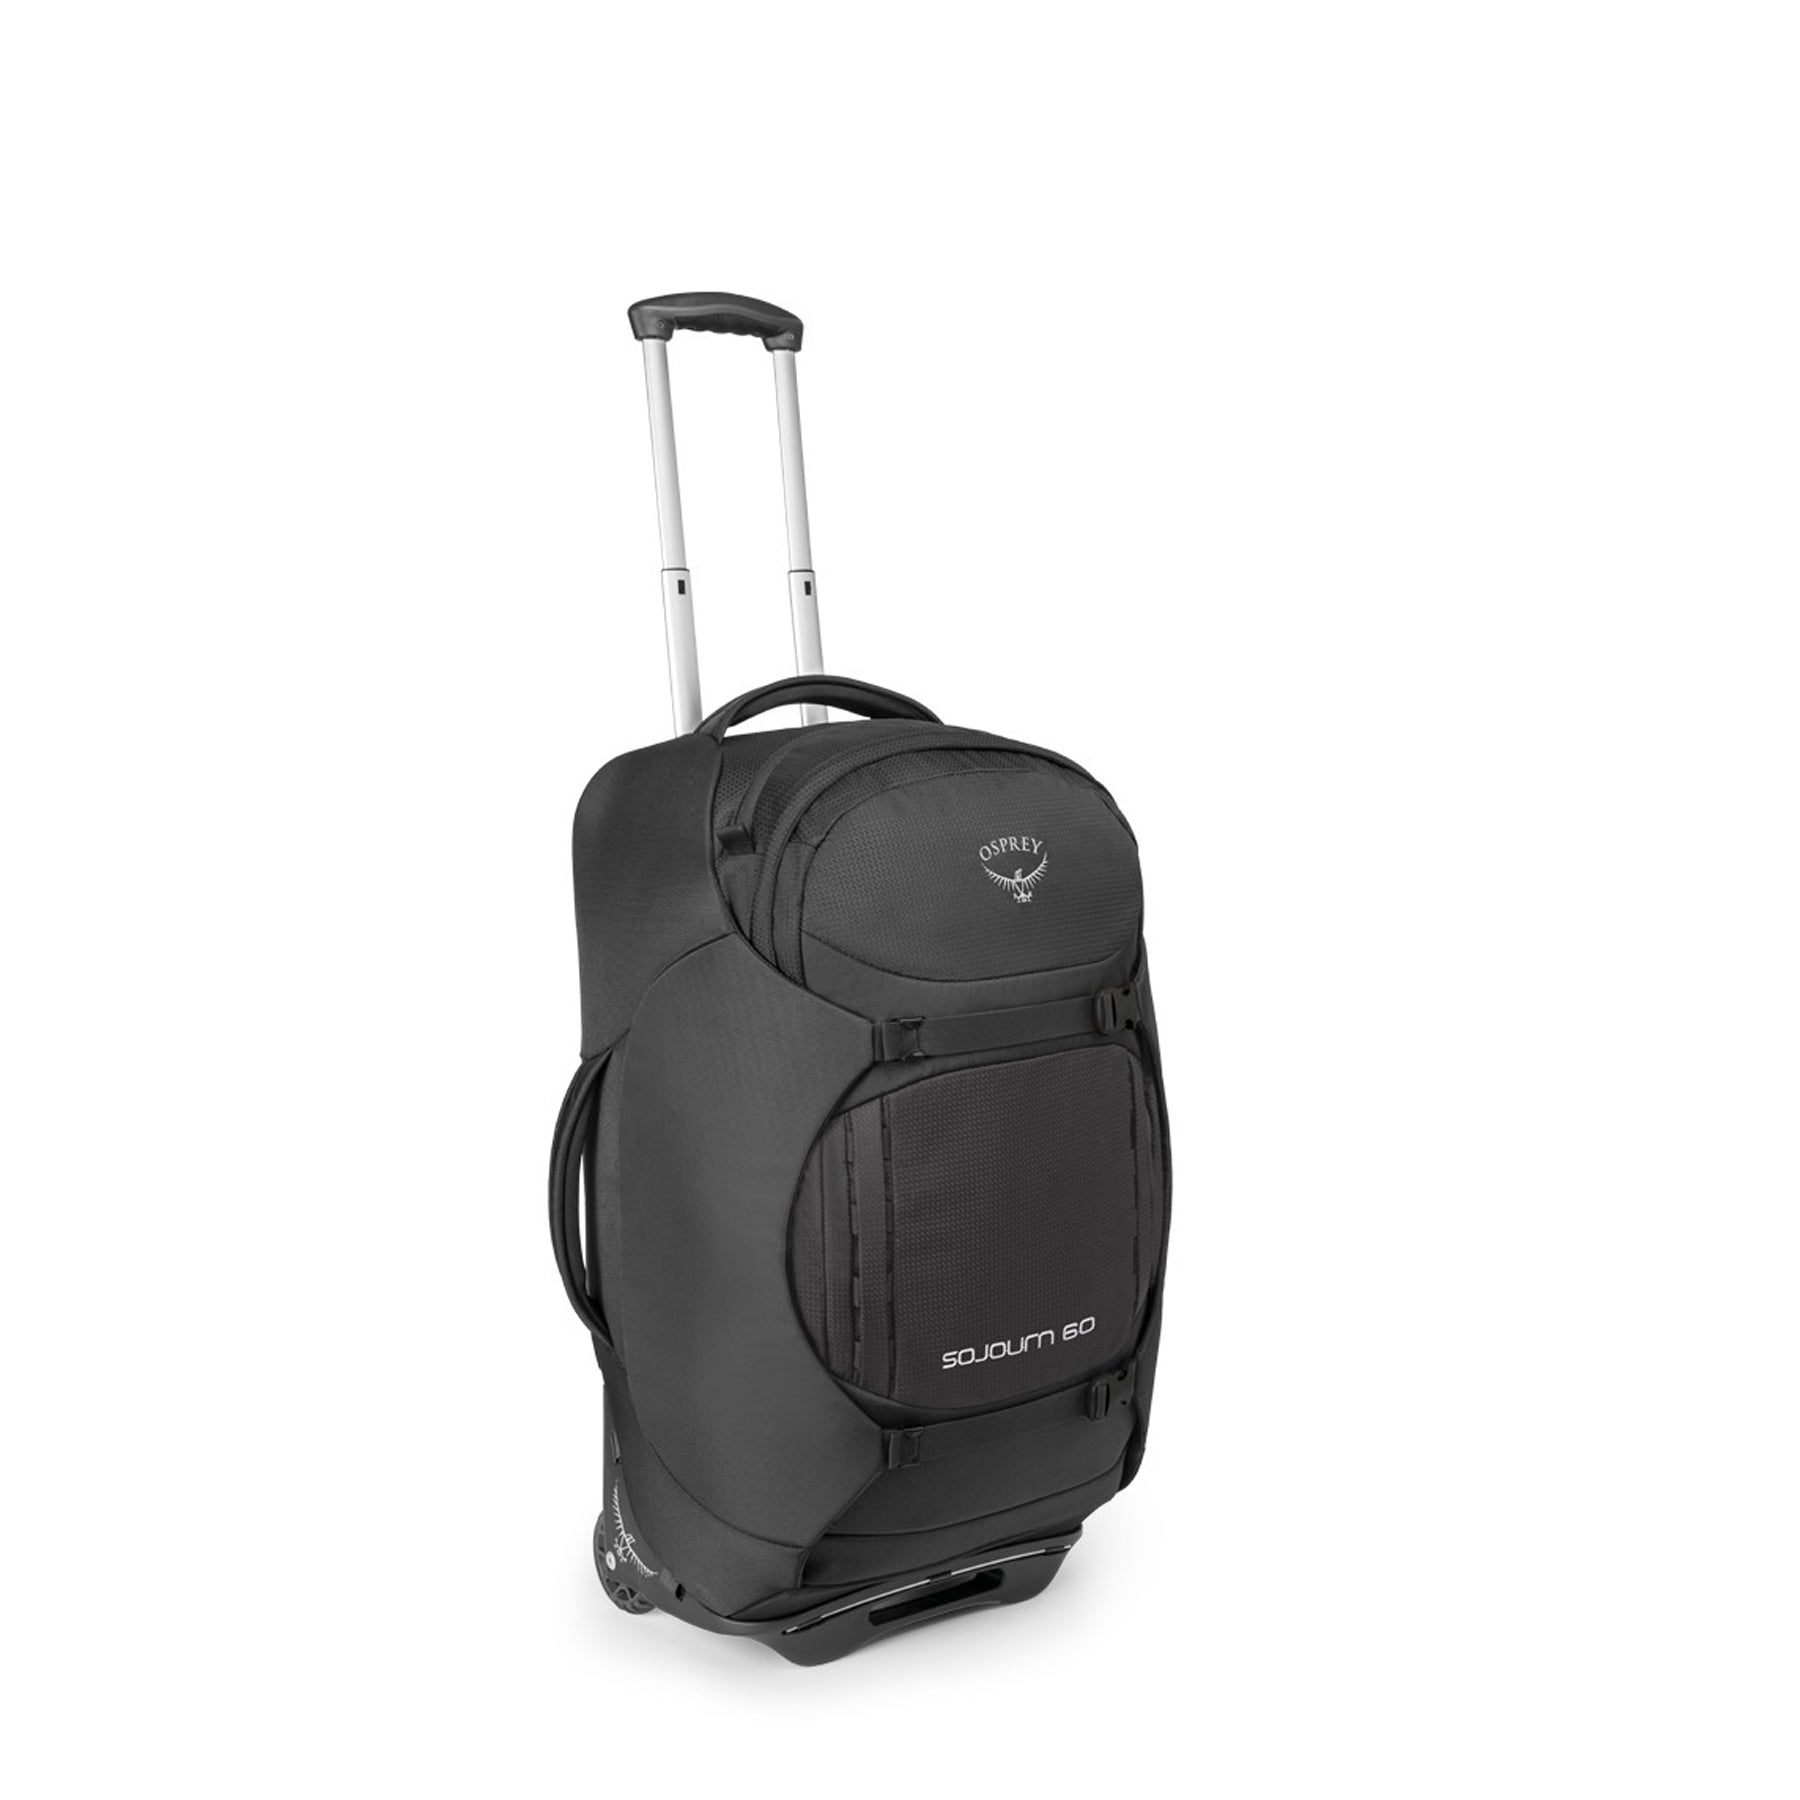 Bagagem Osprey Sojourn 60 - Flash Black